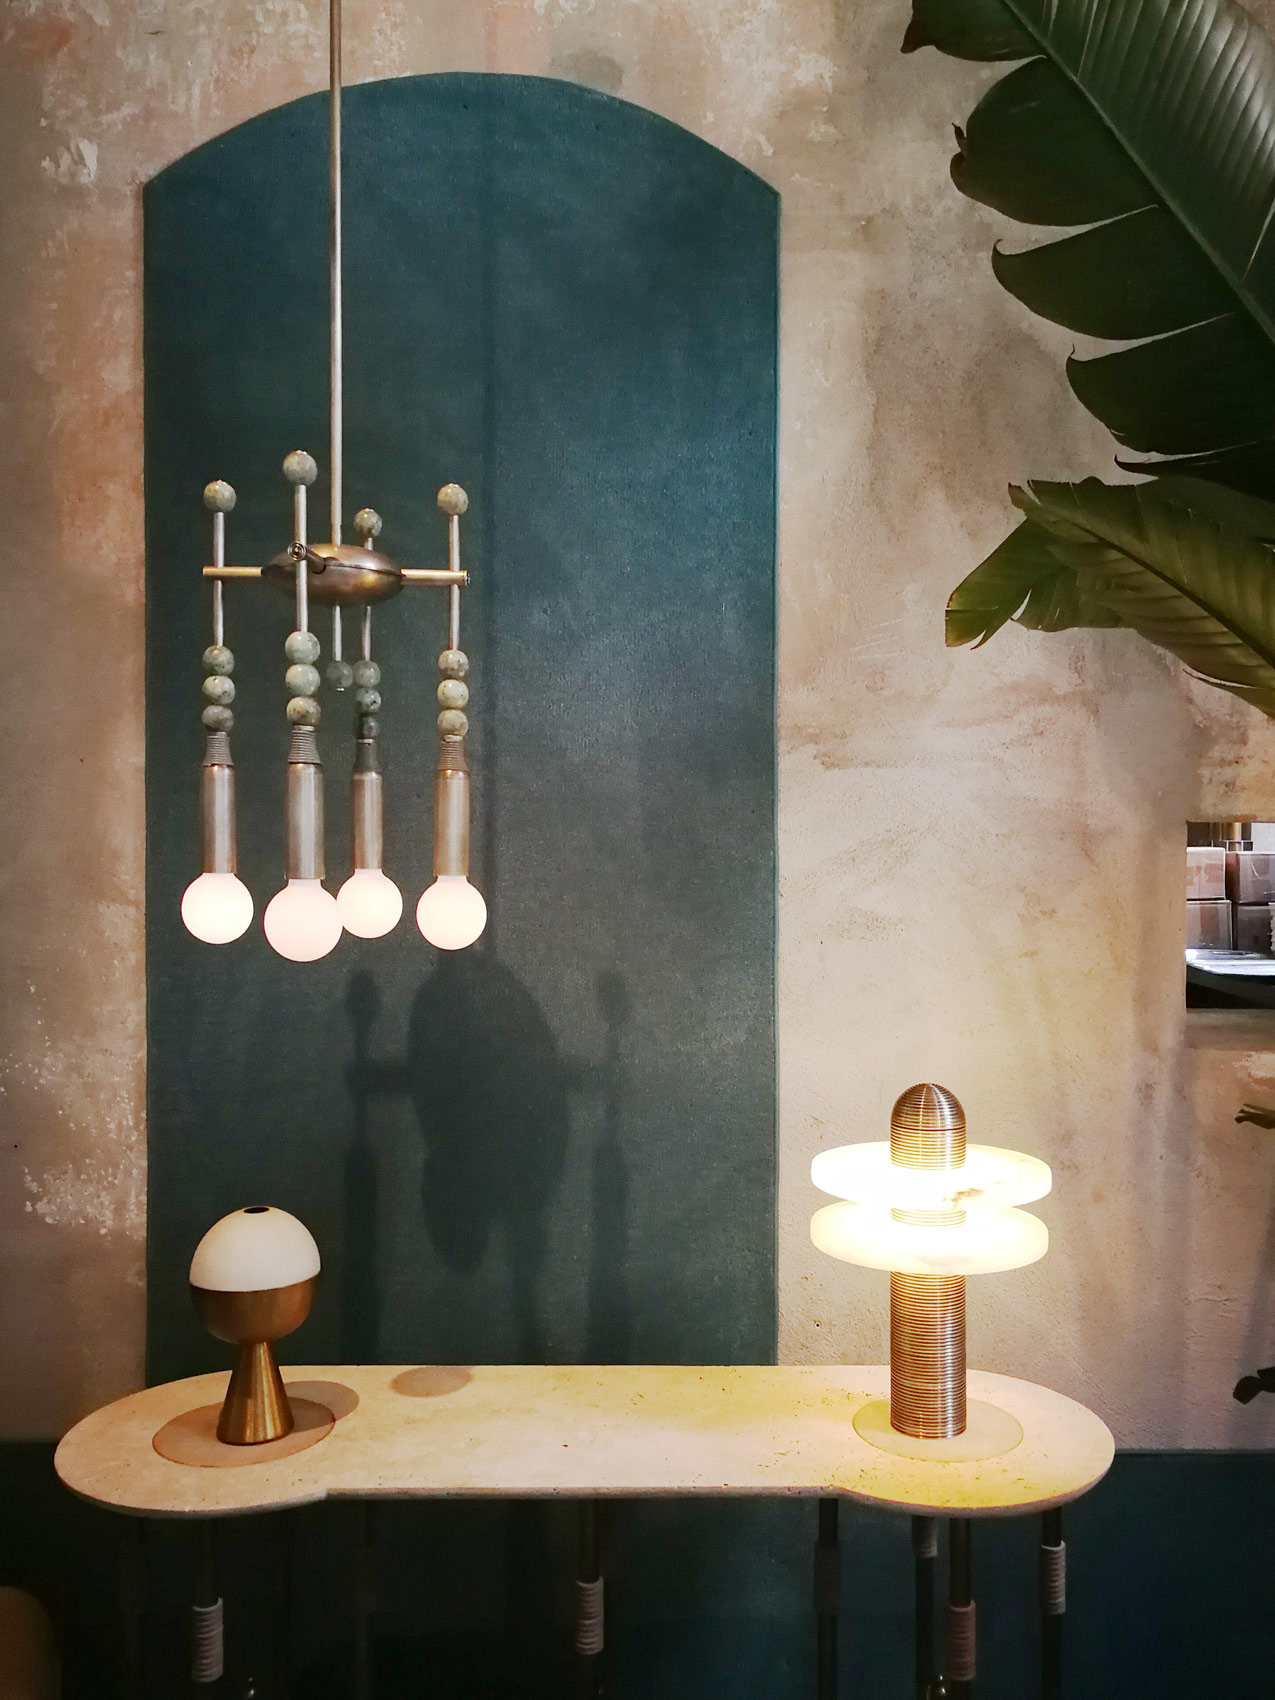 Milan Design Week 2018 Top Things I Loved - Authentic Interior Design Blog